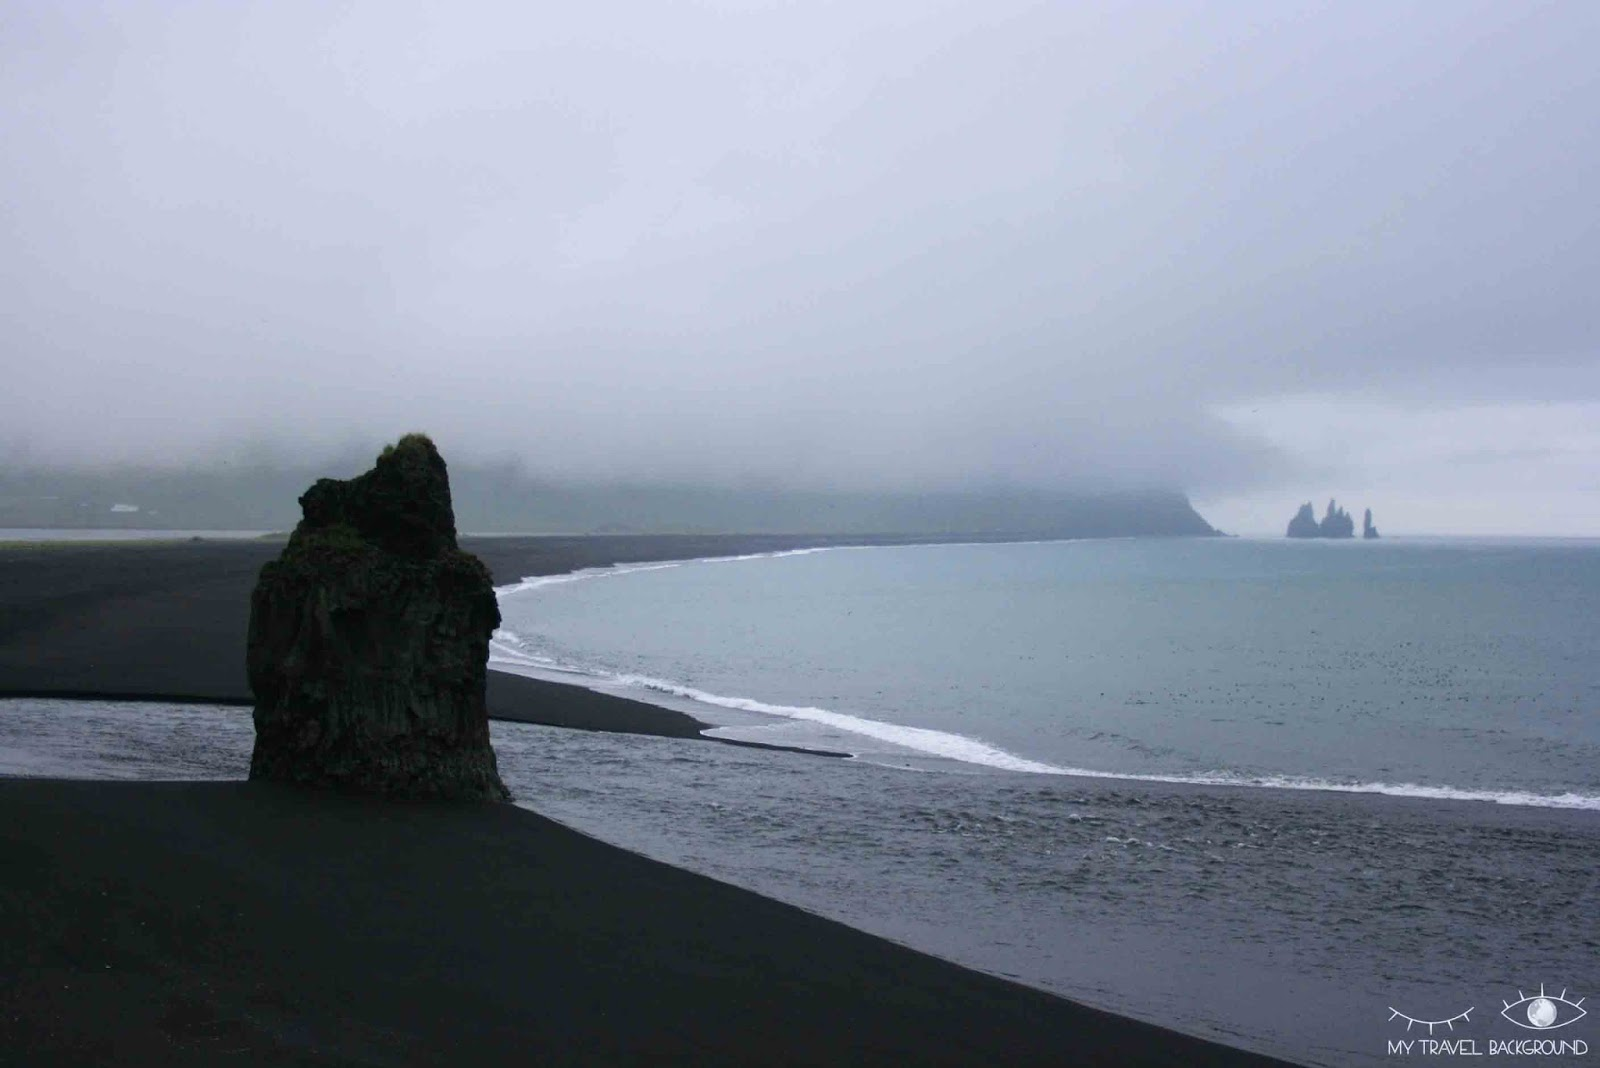 My Travel Background : où observer les macareux moines en Islande? A Vik et Dyrholaey